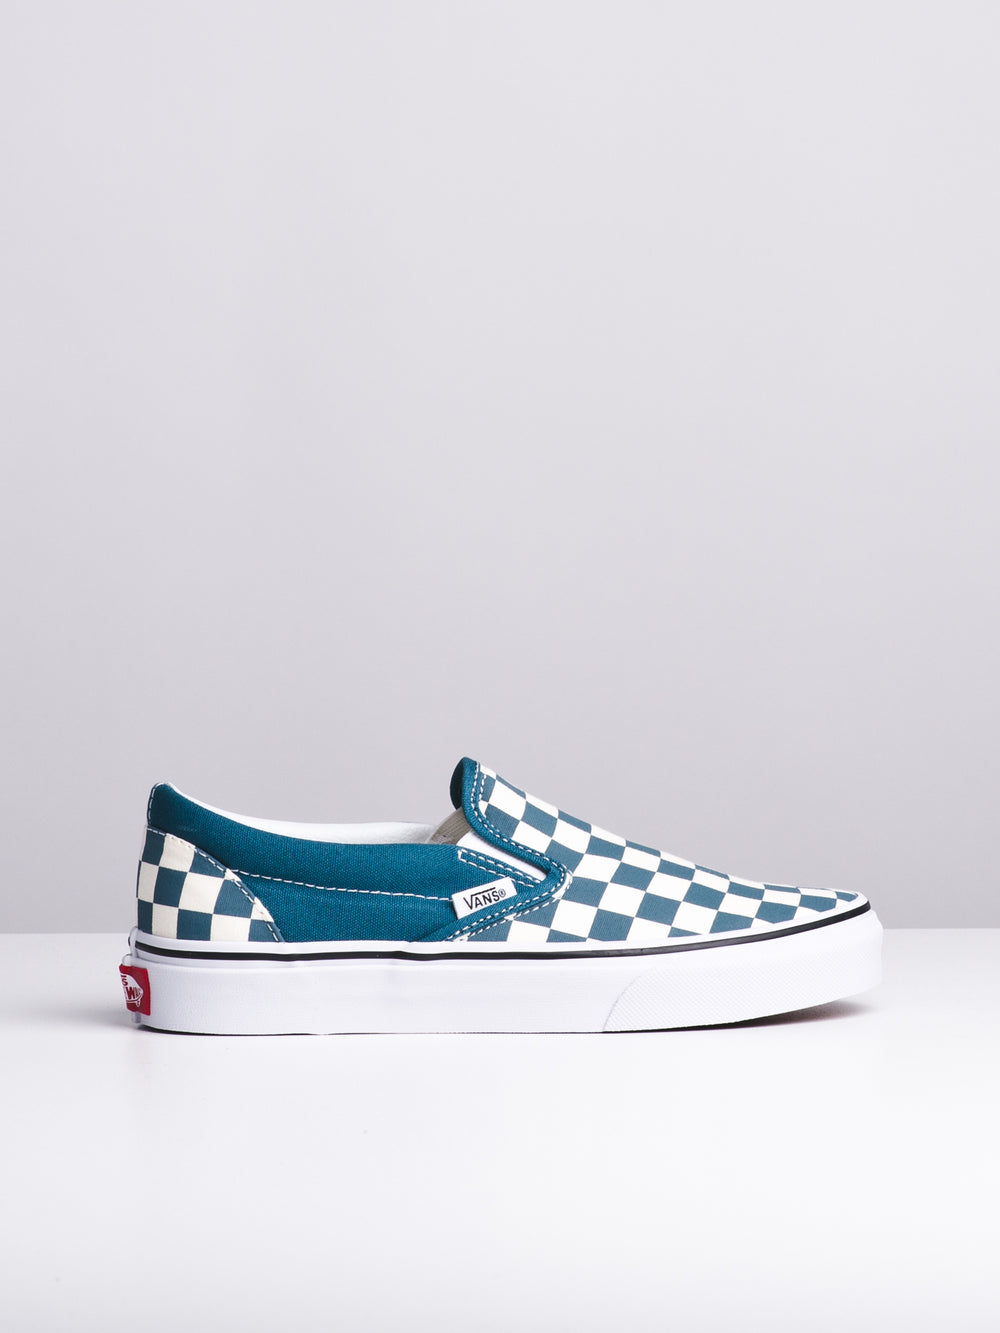 dedb76b03fb066 WOMENS CL SLIP ON - CHECKER CORSAIR